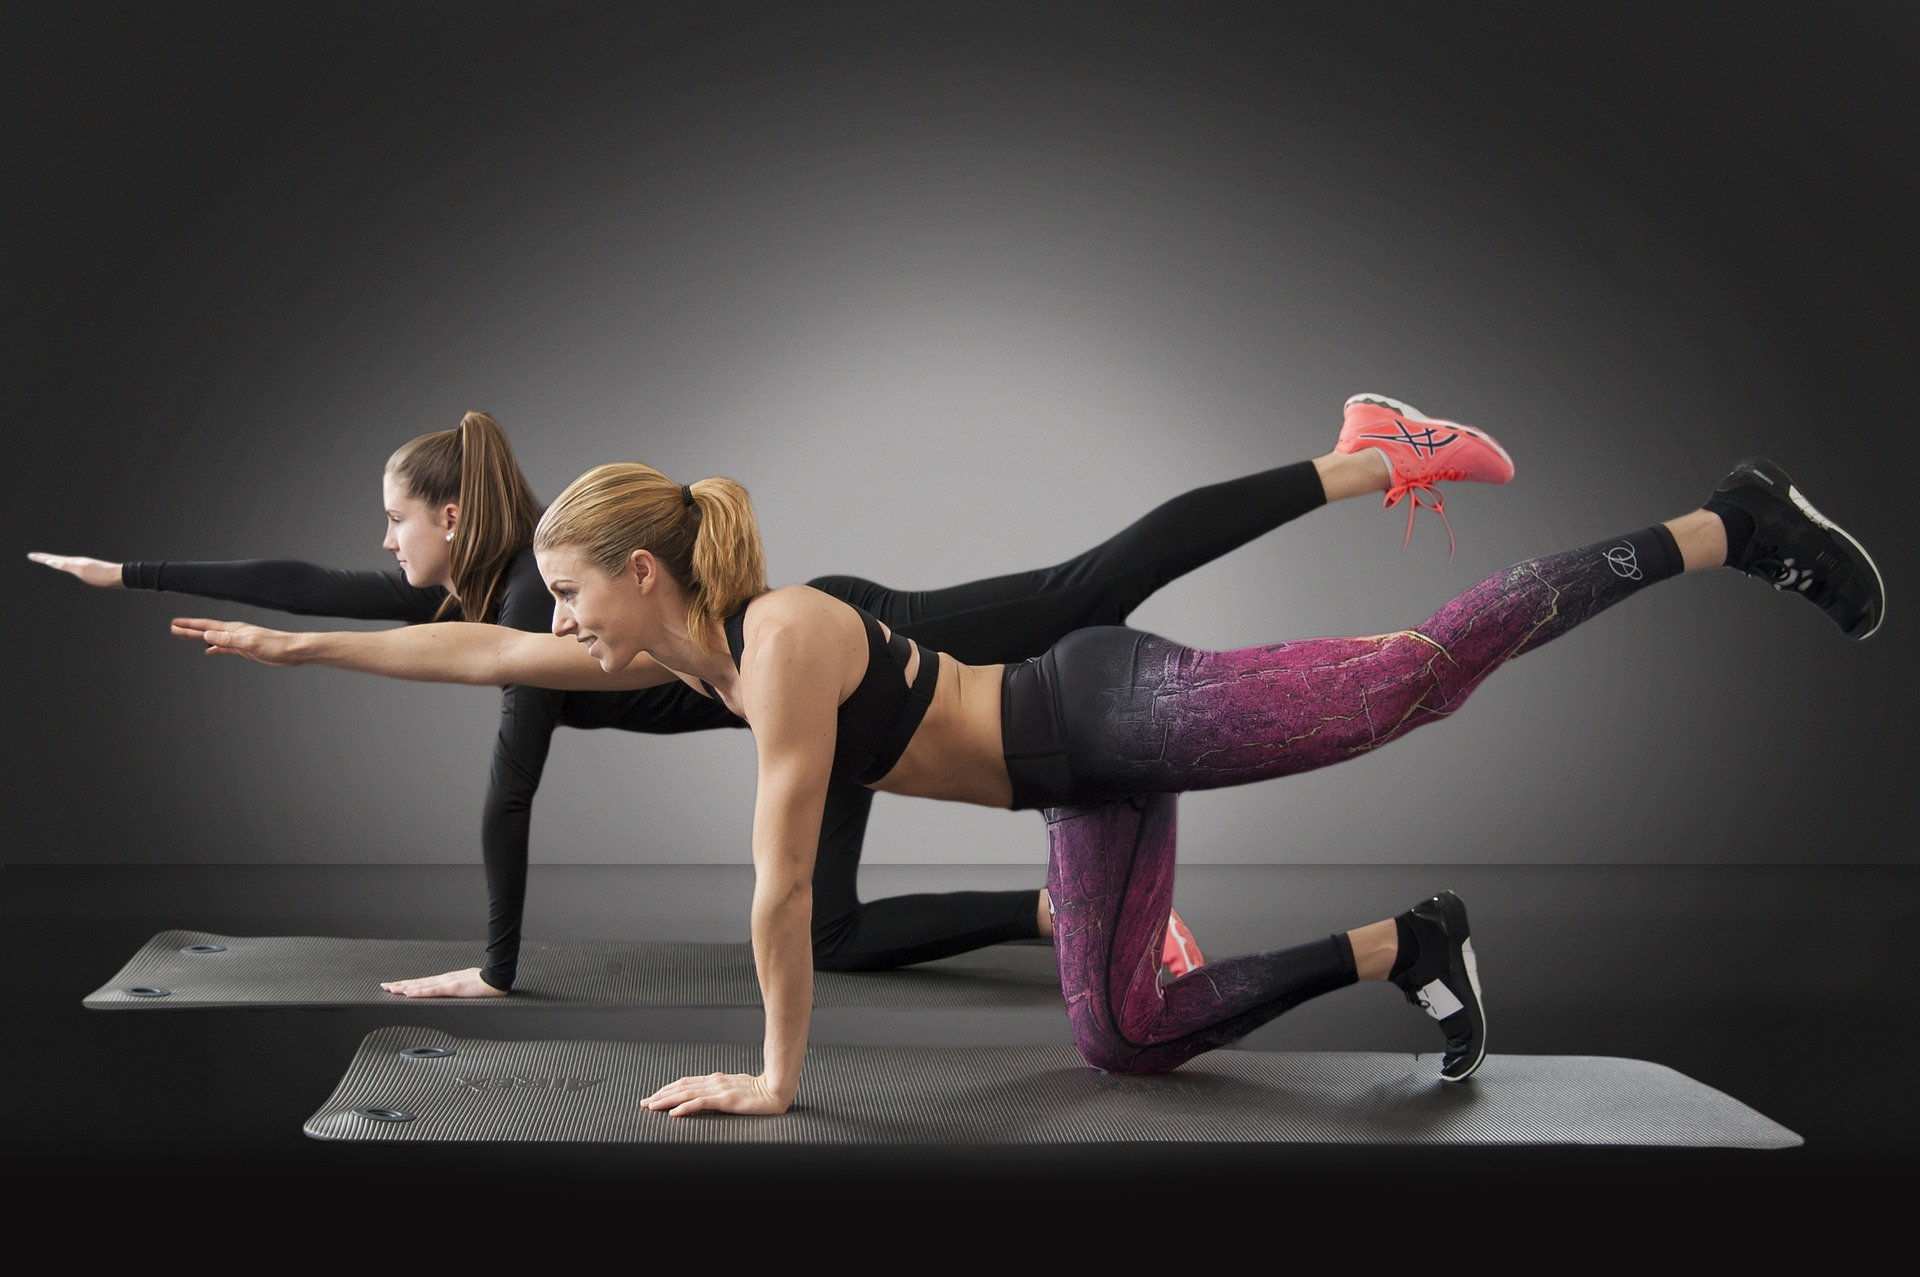 Fitness Workout: Some Important Things To Know About It